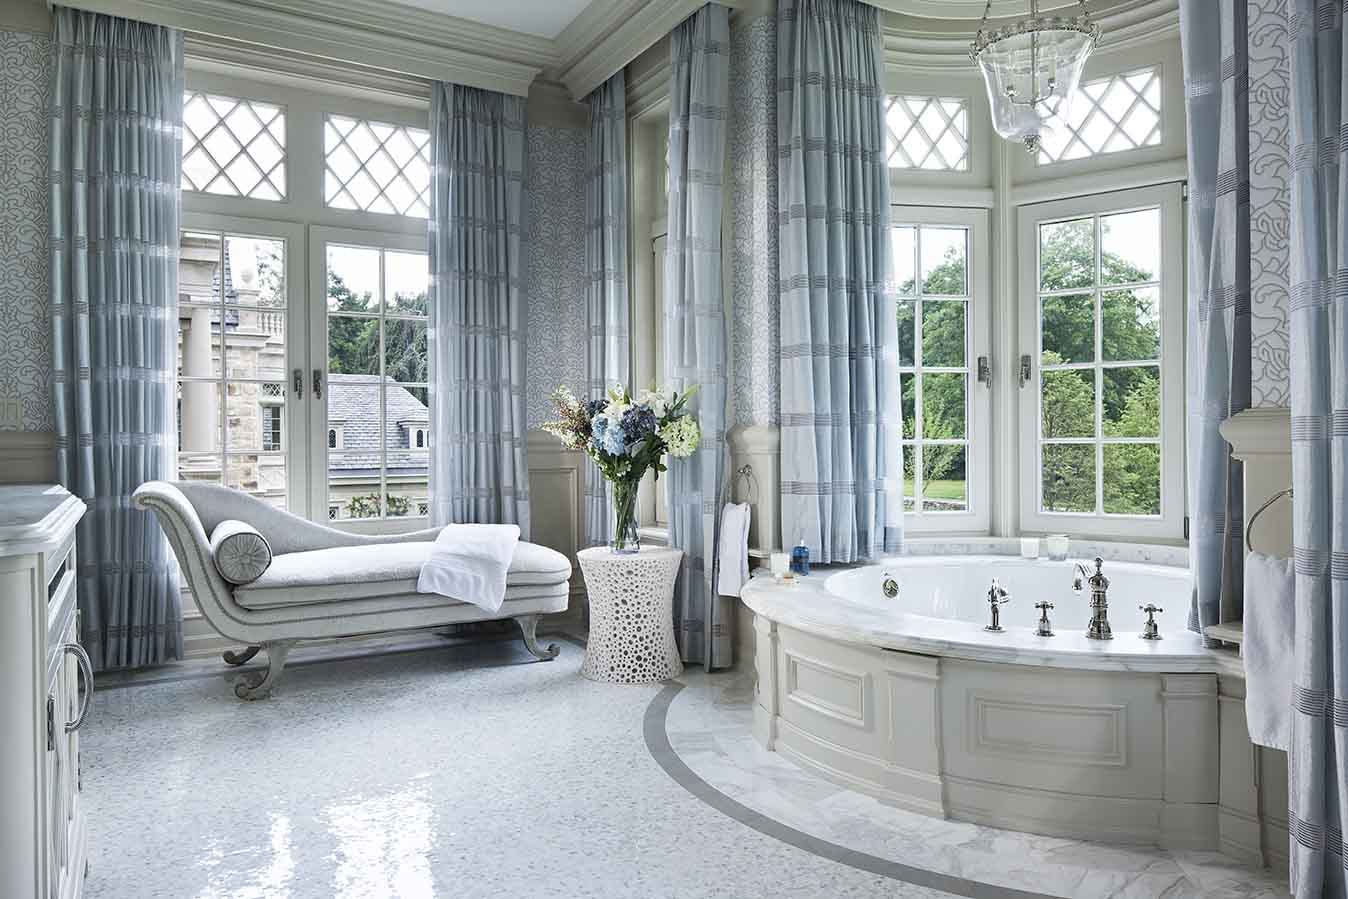 The Rinfret, Ltd. Bath recognized as a finalist in the A-List Bath category.